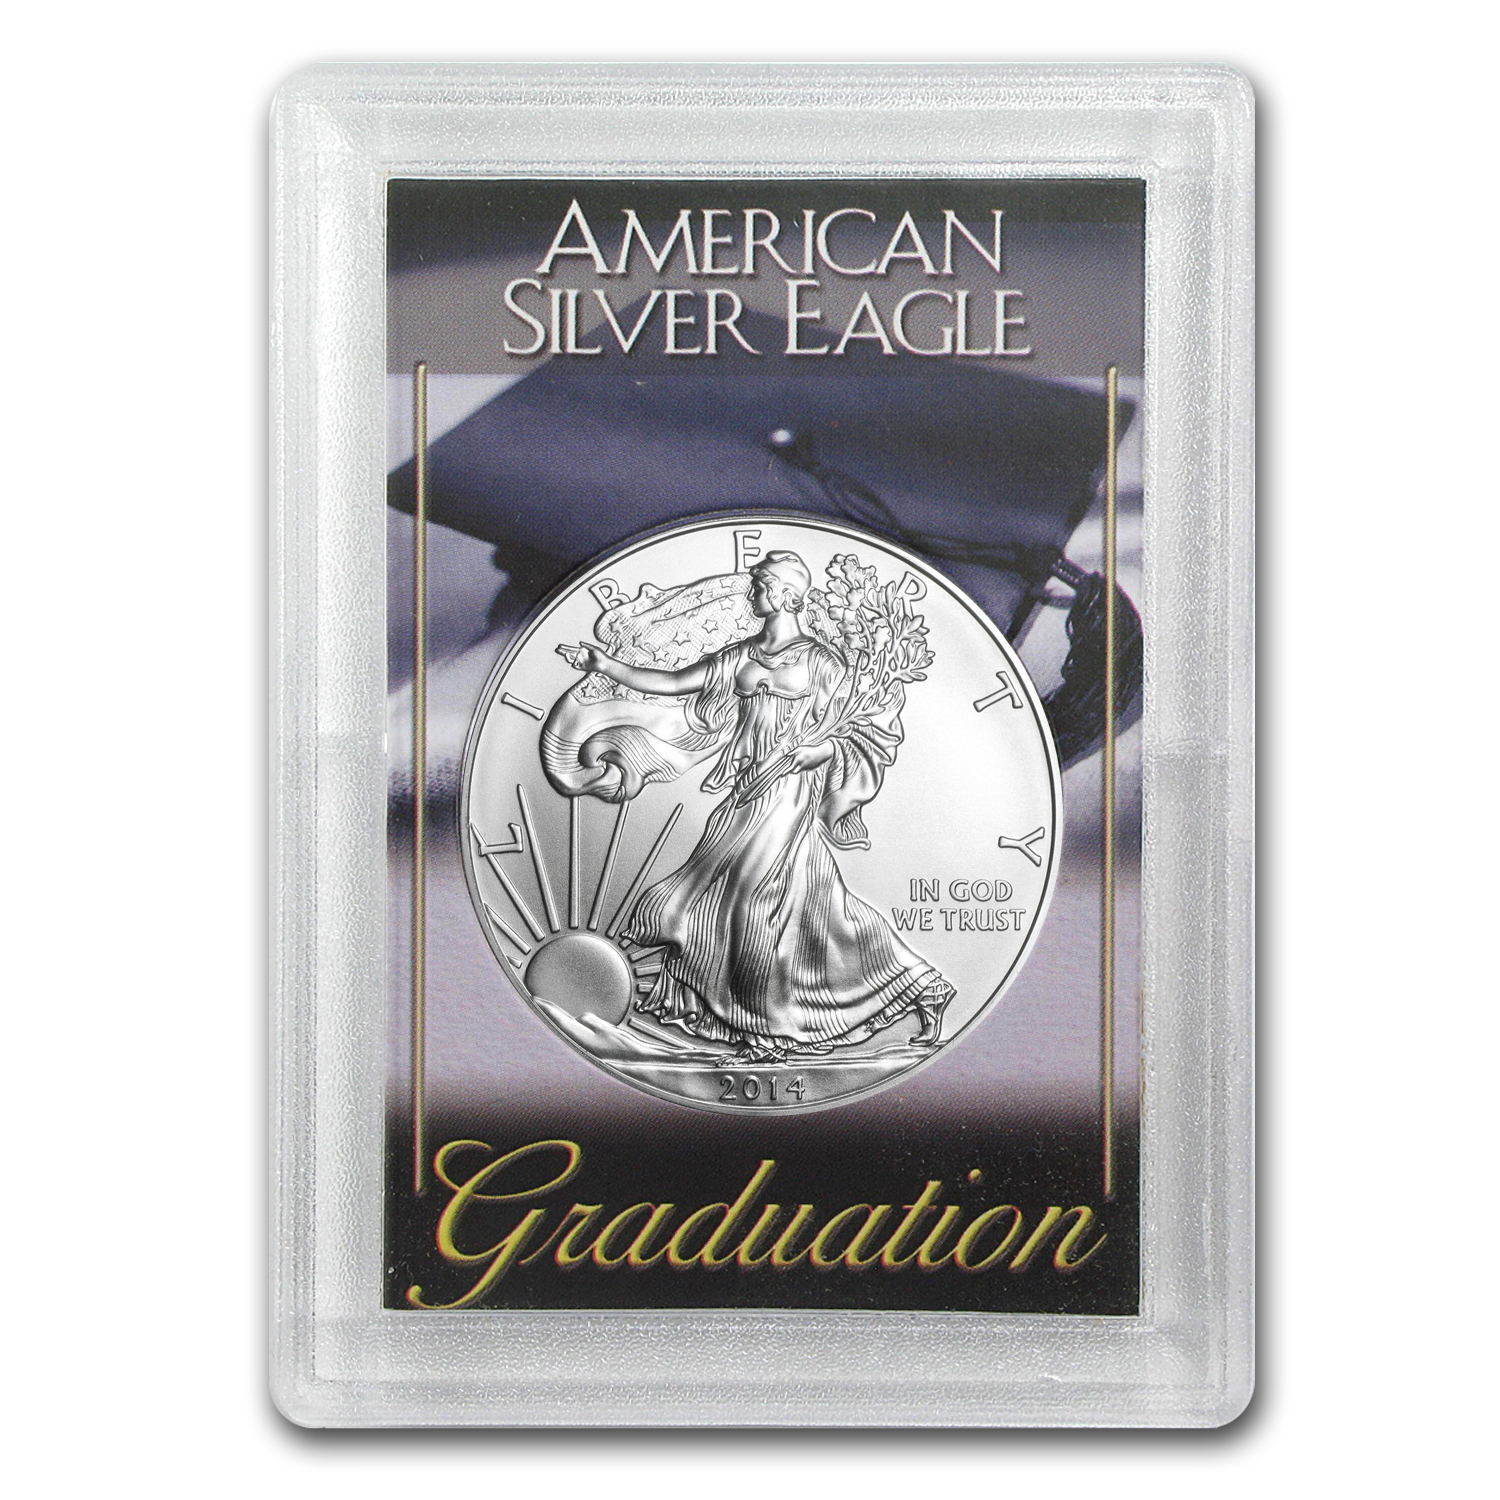 2014 1 oz Silver American Eagle BU (Graduation Harris Holder)